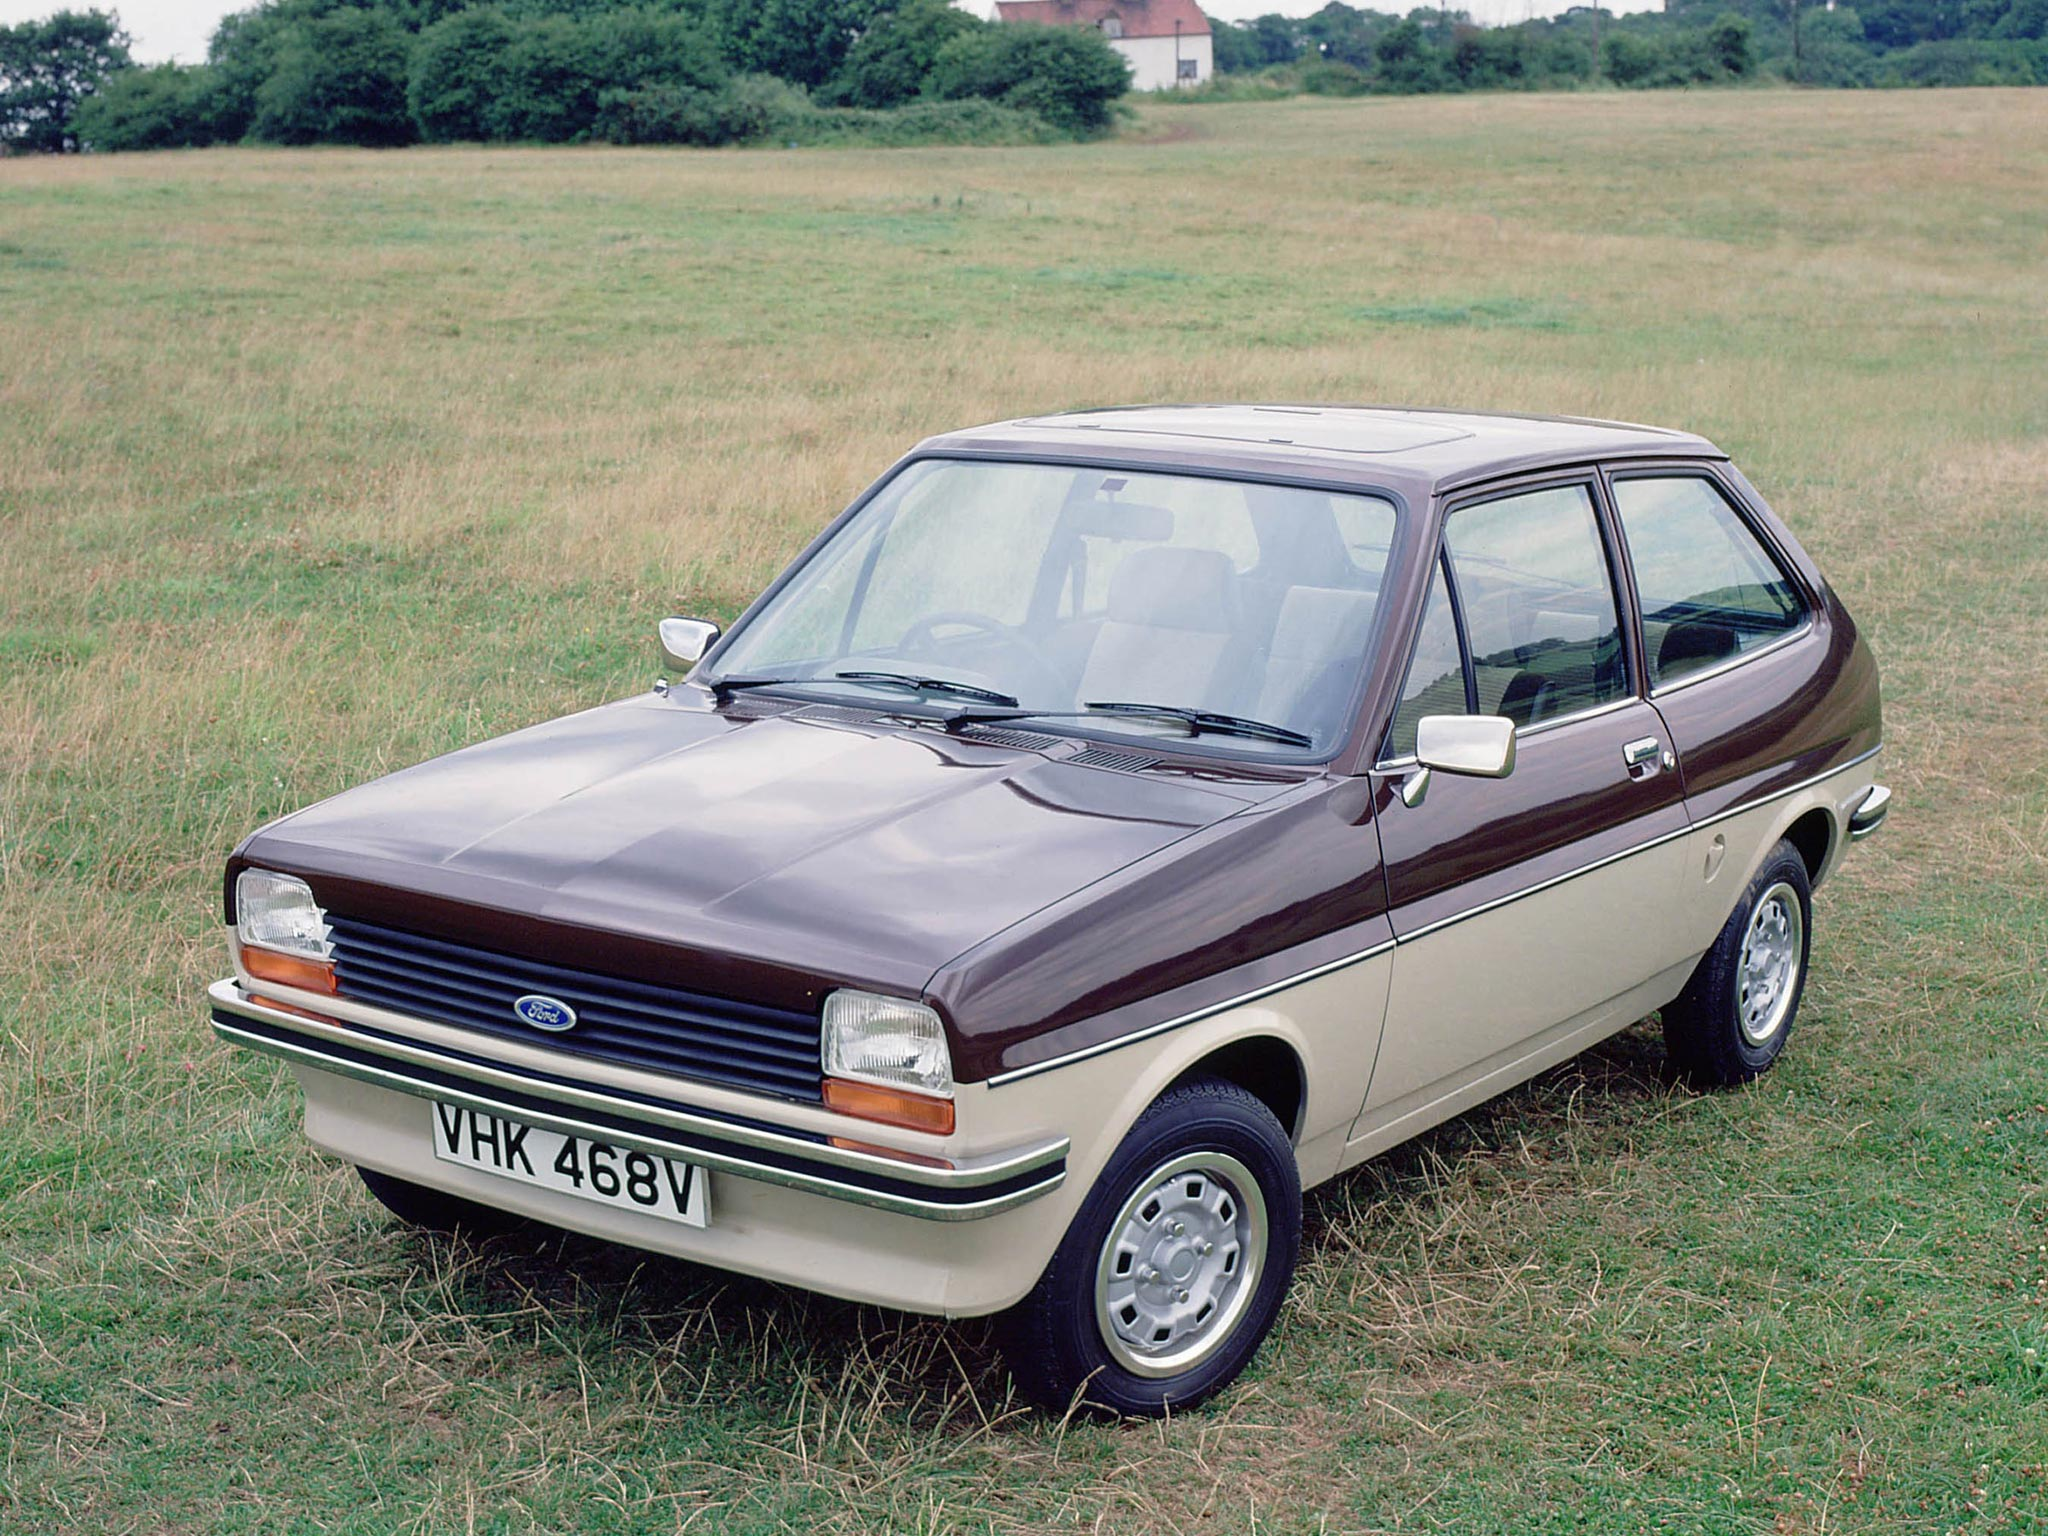 Ford fiesta is uk s most popular car of all time with sales topping 4 1 million since 1976 the independent